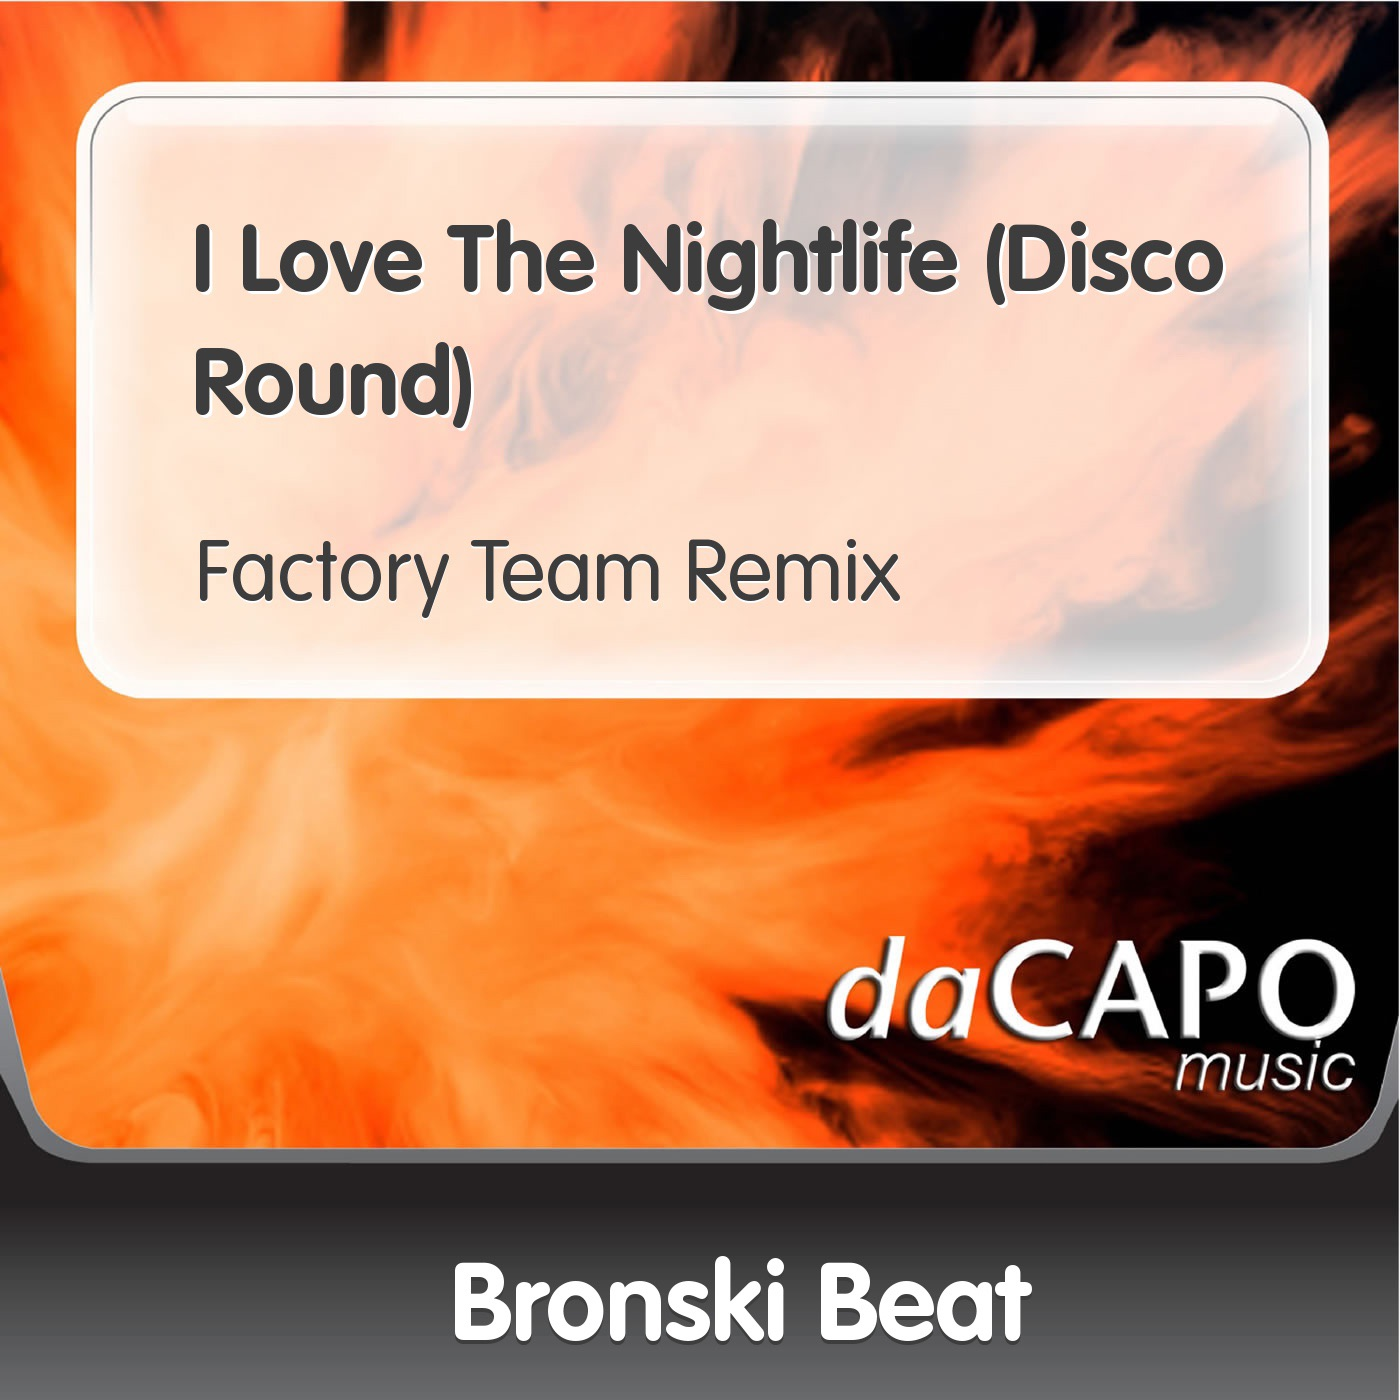 I Love the Nightlife (Disco Round) [Factory Team Remix] - Single